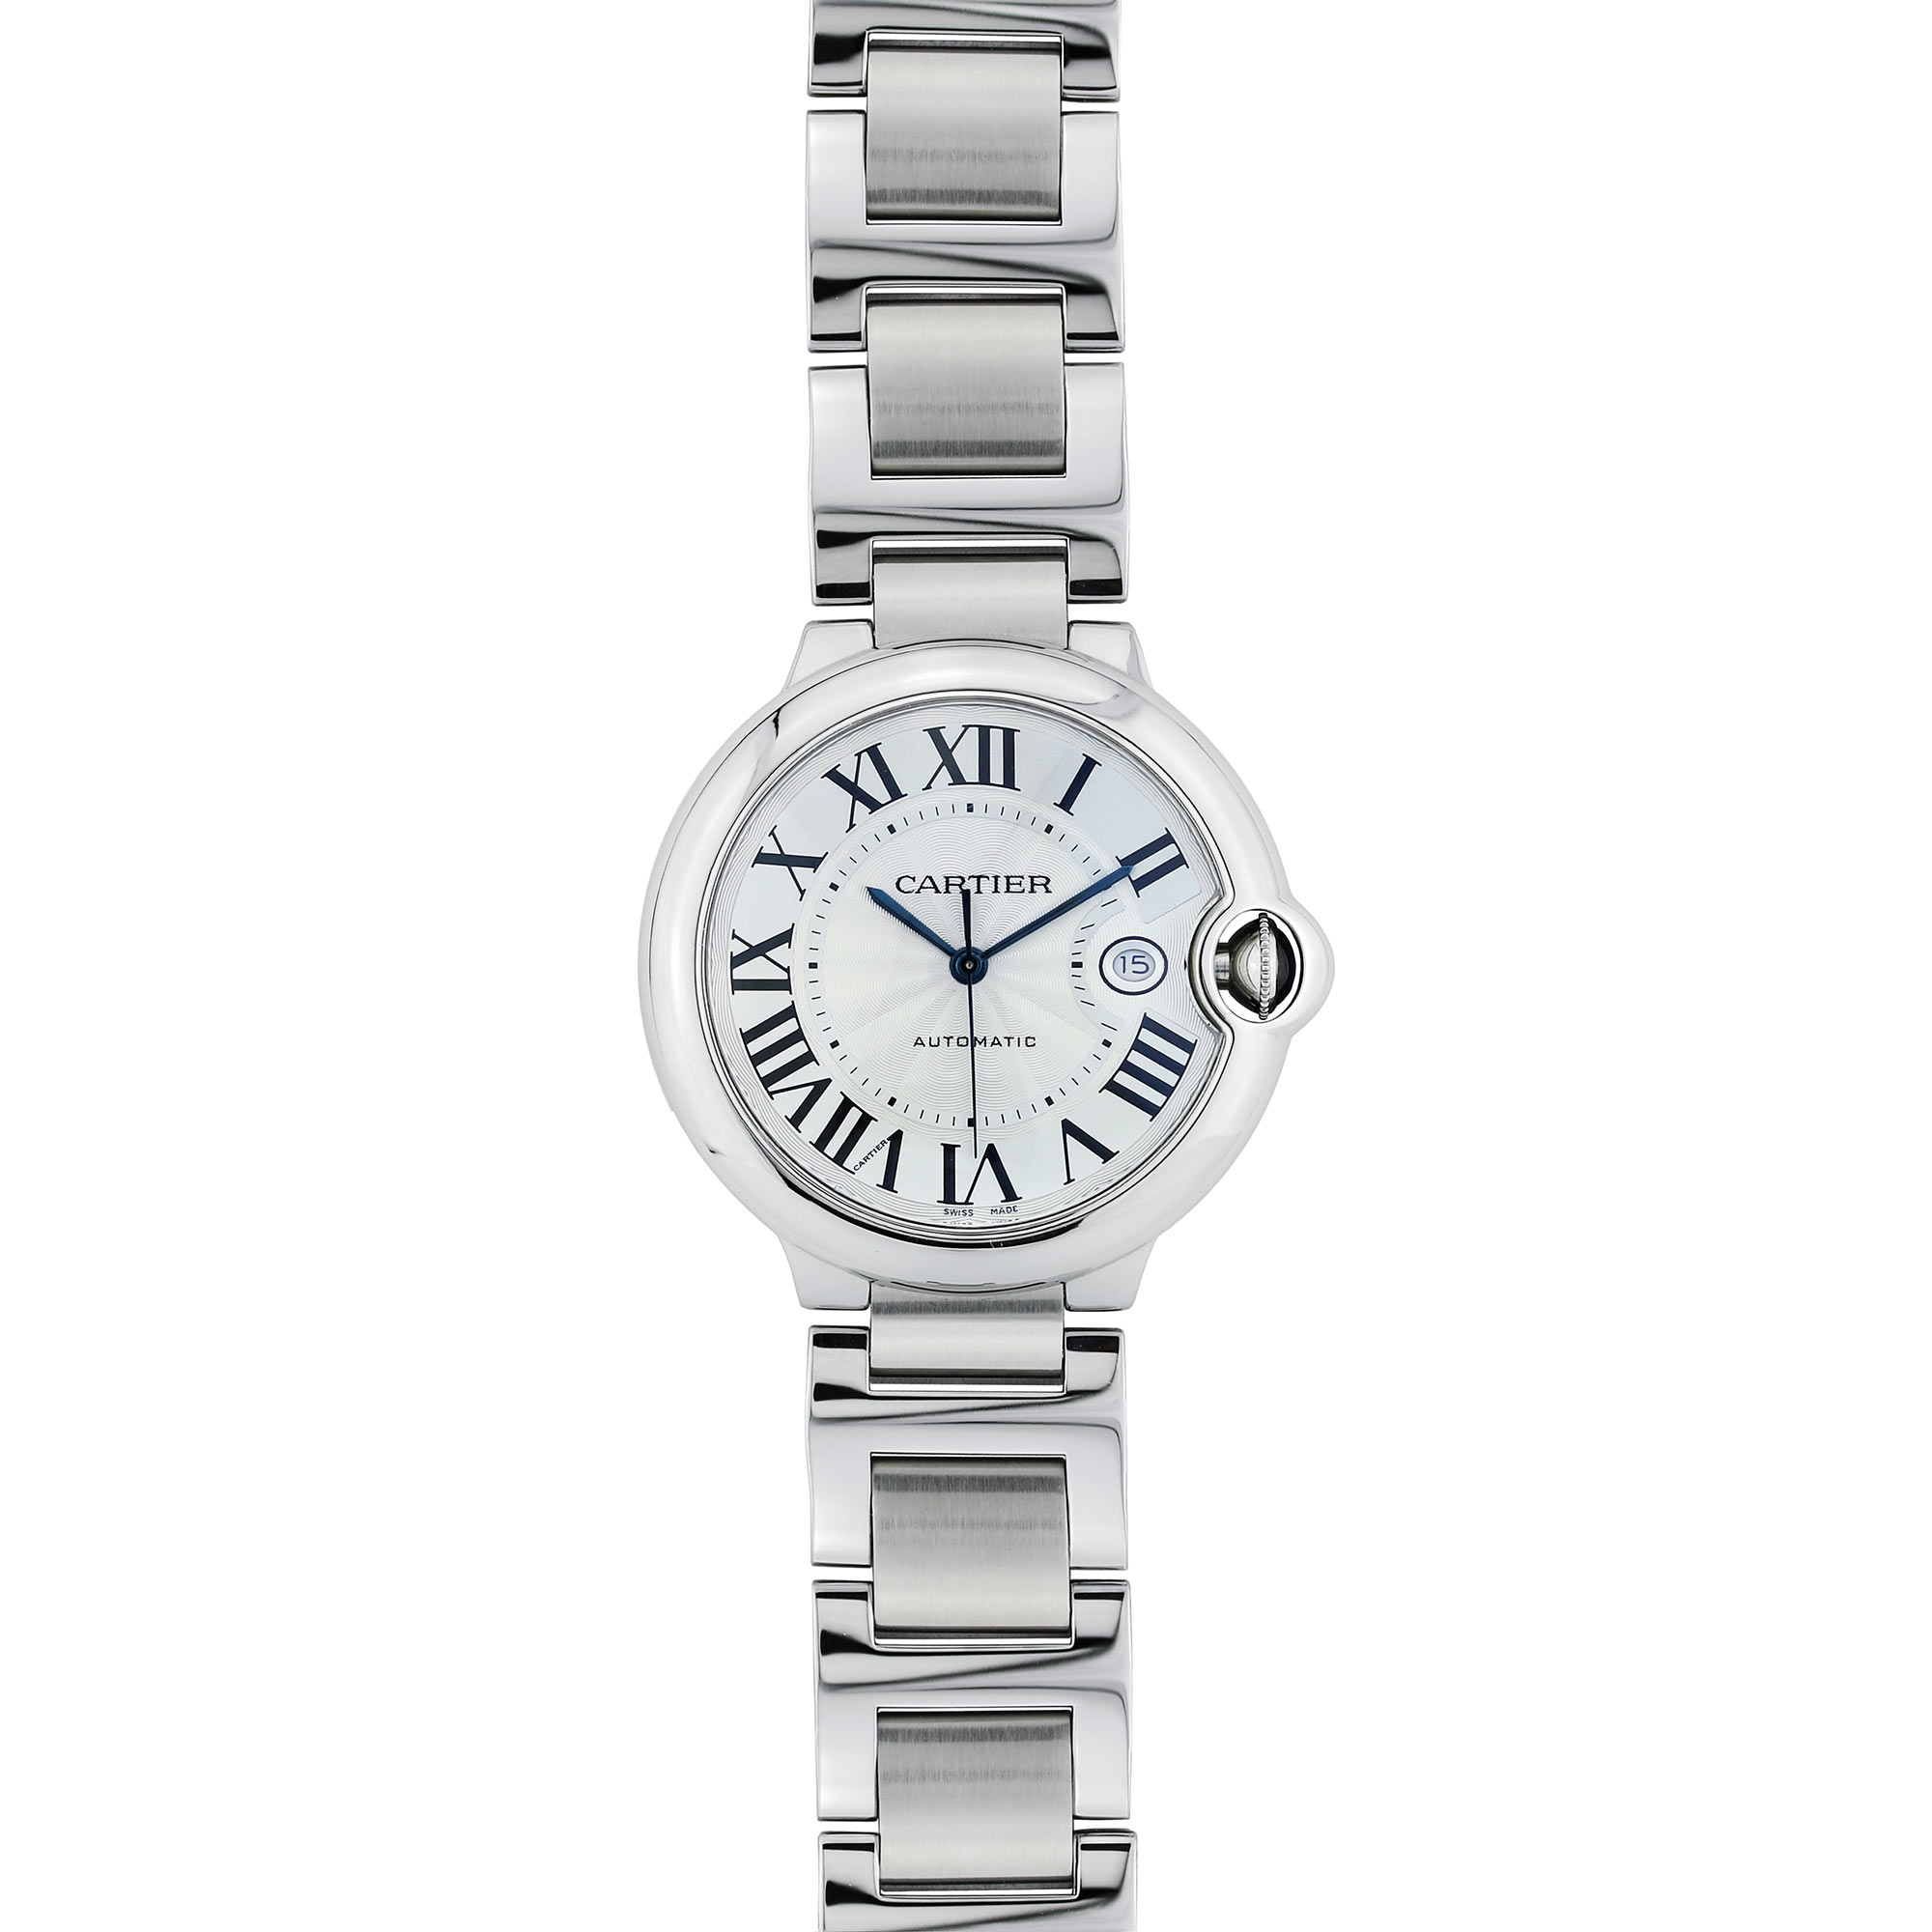 Cartier Ballon Bleu Stainless Steel Large Size Stainless Steel Watch